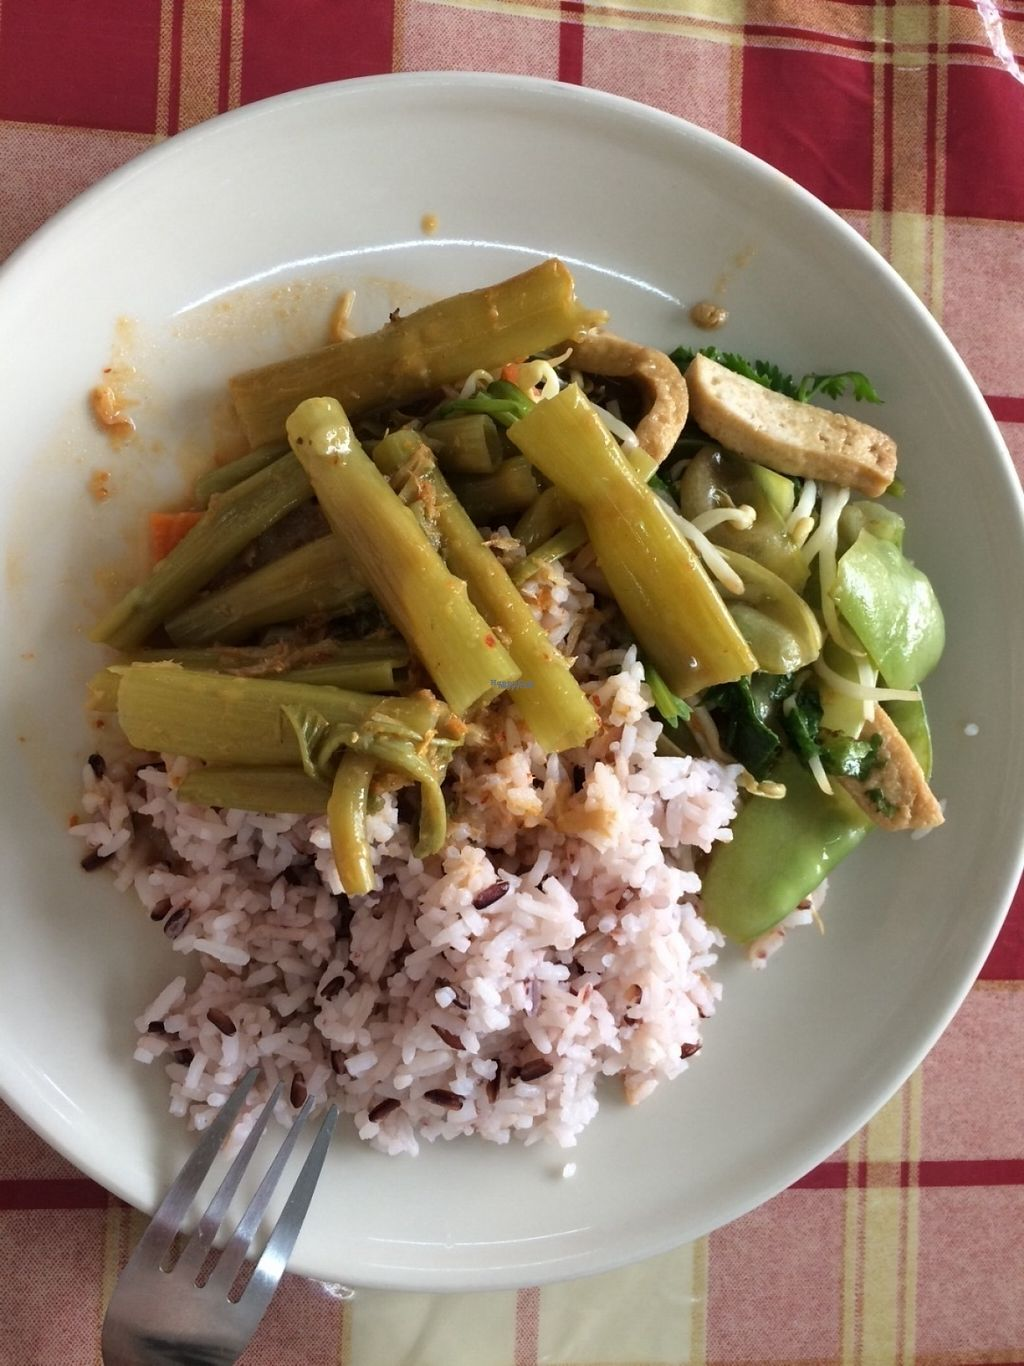 "Photo of Vegetarian Food  by <a href=""/members/profile/karina__la"">karina__la</a> <br/> November 4, 2016  - <a href='/contact/abuse/image/82354/186483'>Report</a>"